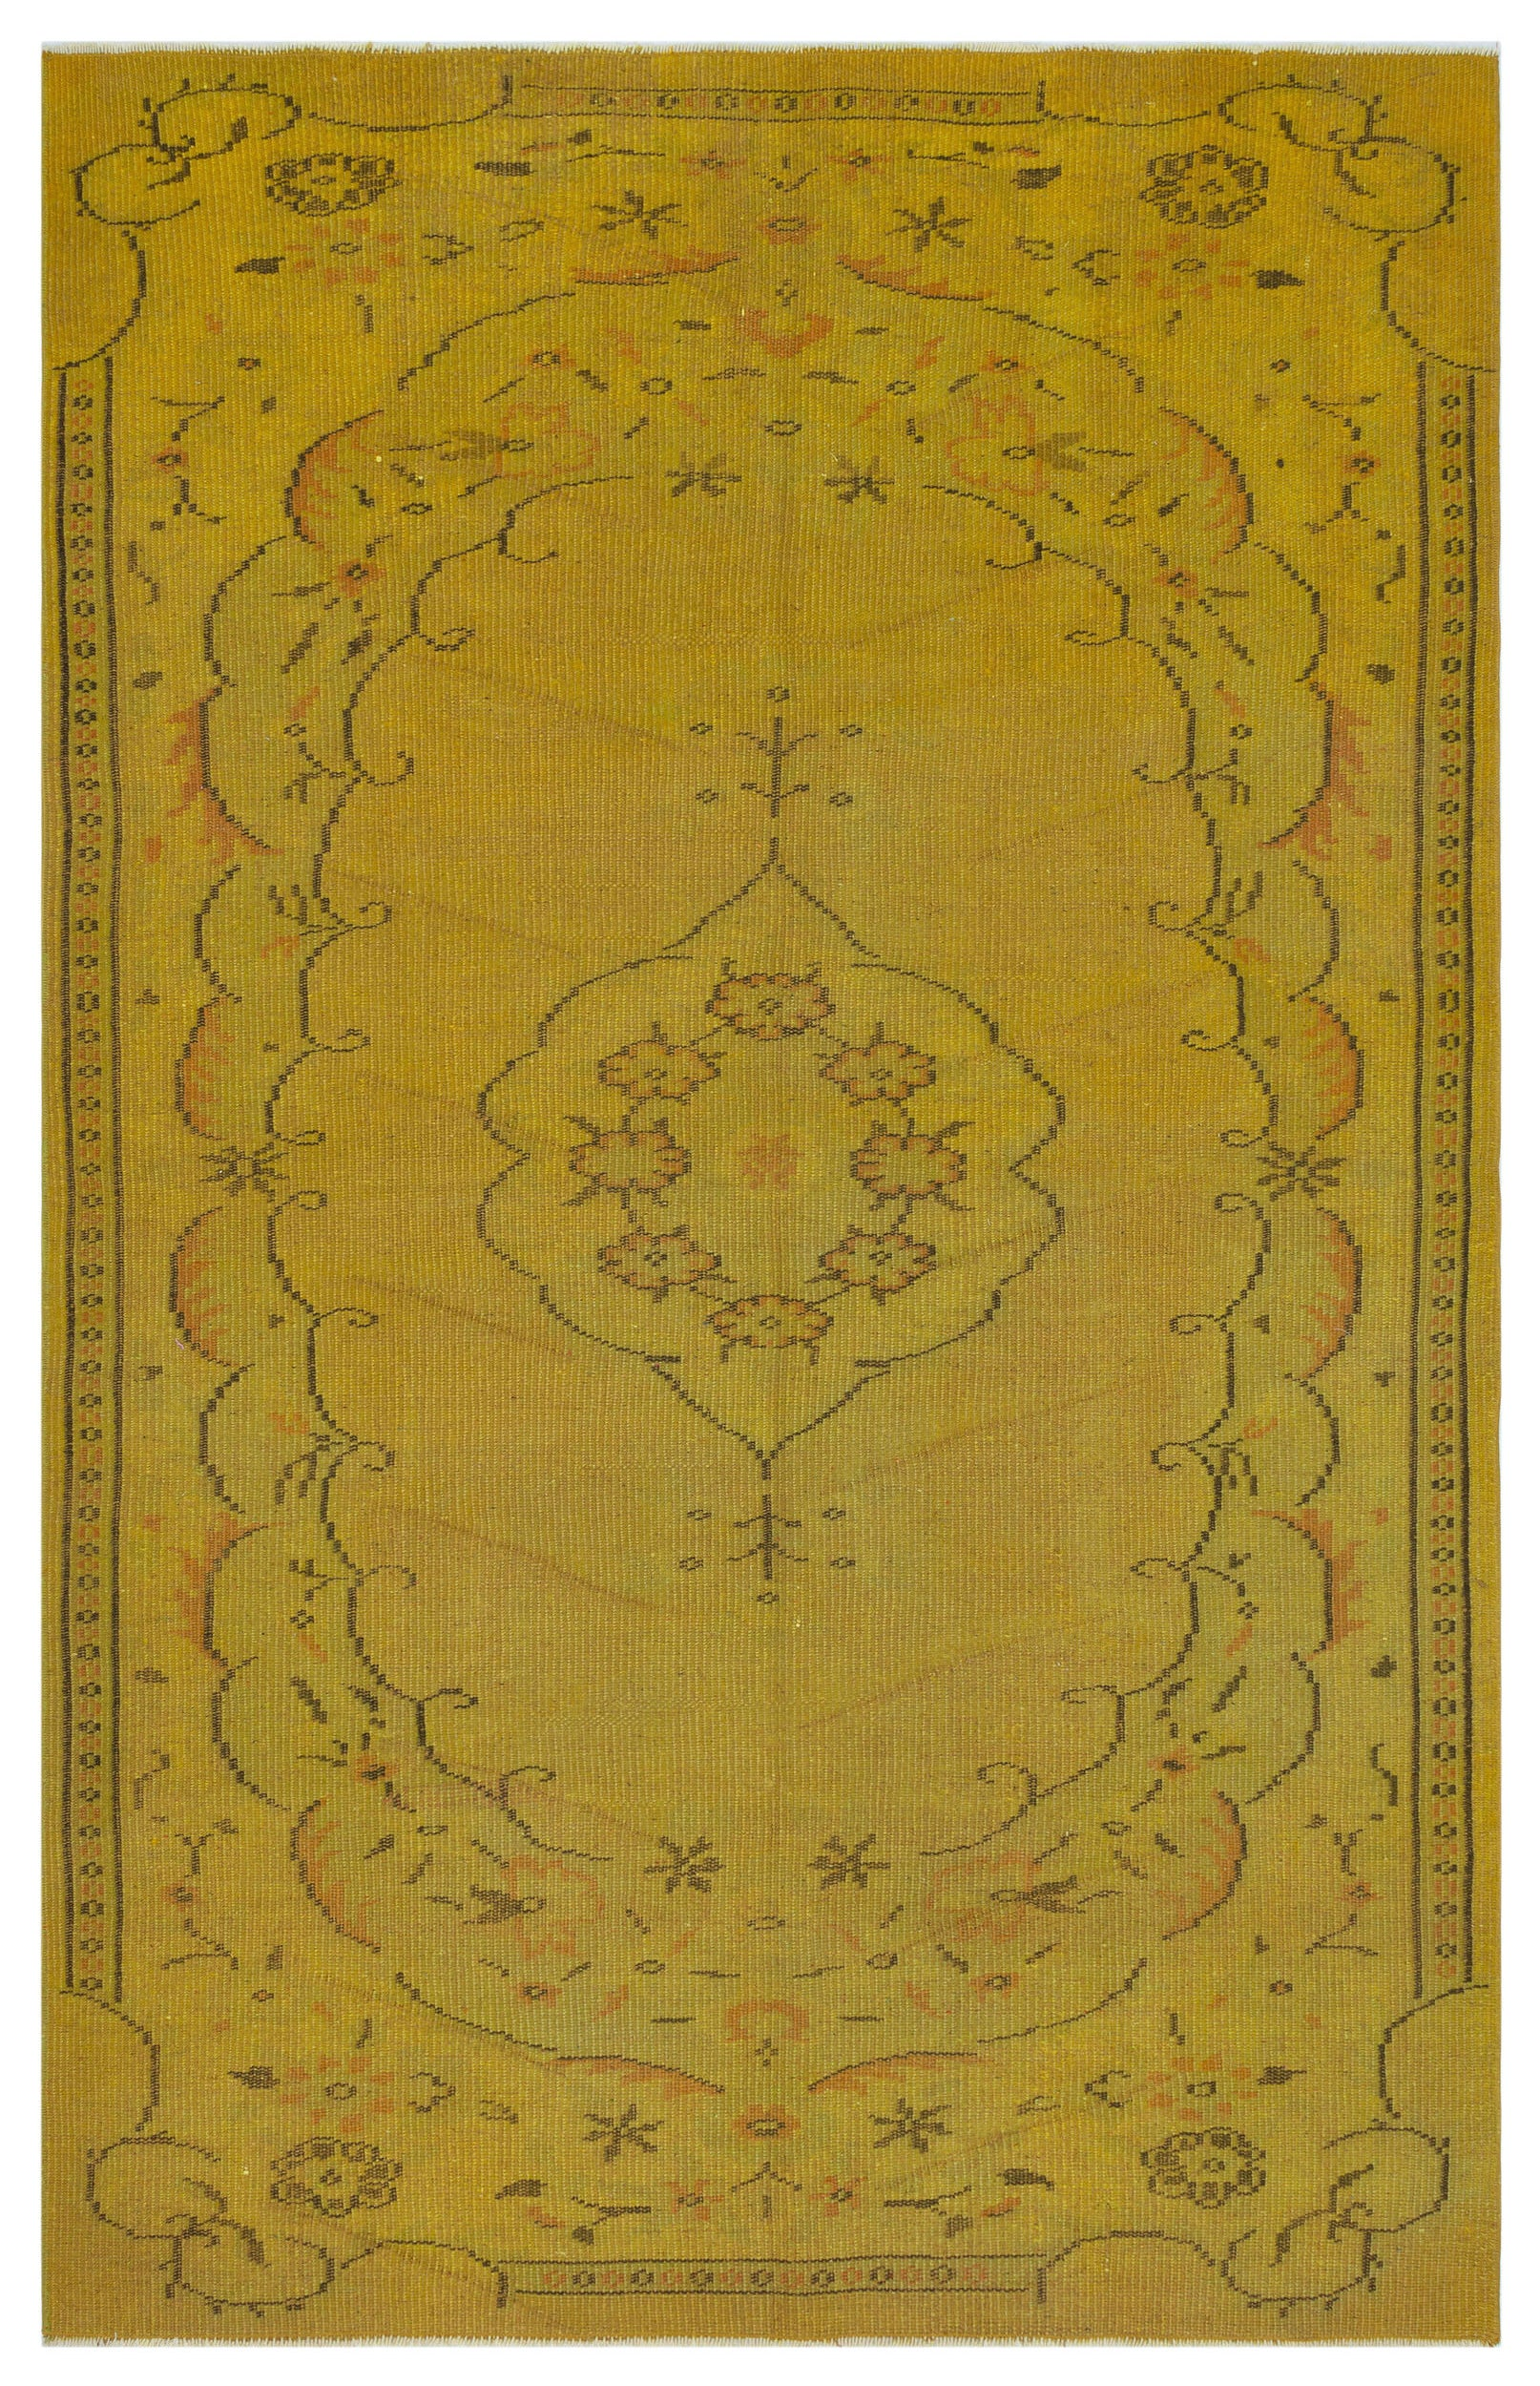 Yellow Over Dyed Vintage Rug 5'3'' x 8'2'' ft 161 x 248 cm